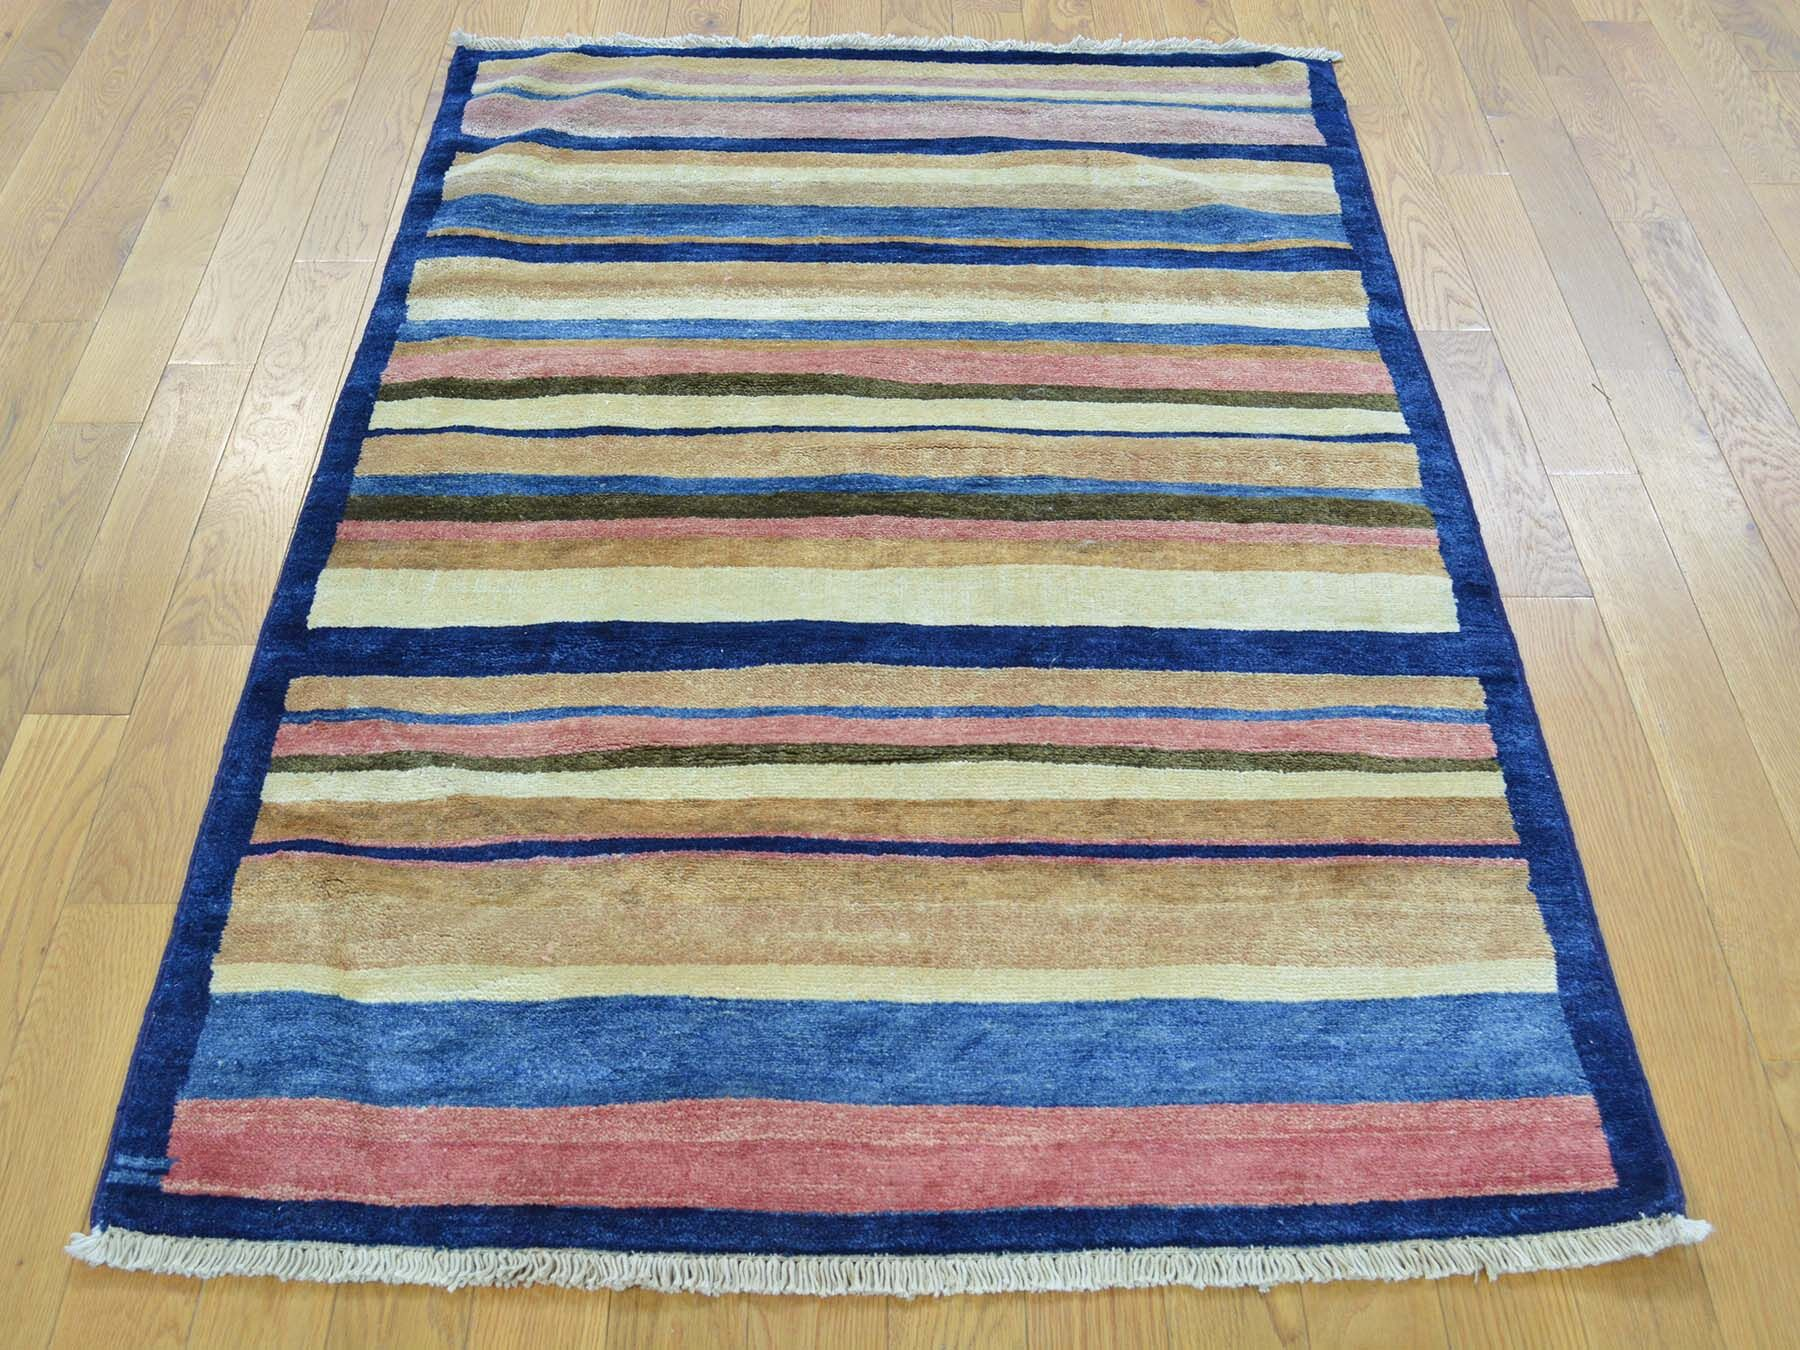 One-of-a-Kind Becker Striped Hand-Knotted Wool Area Rug